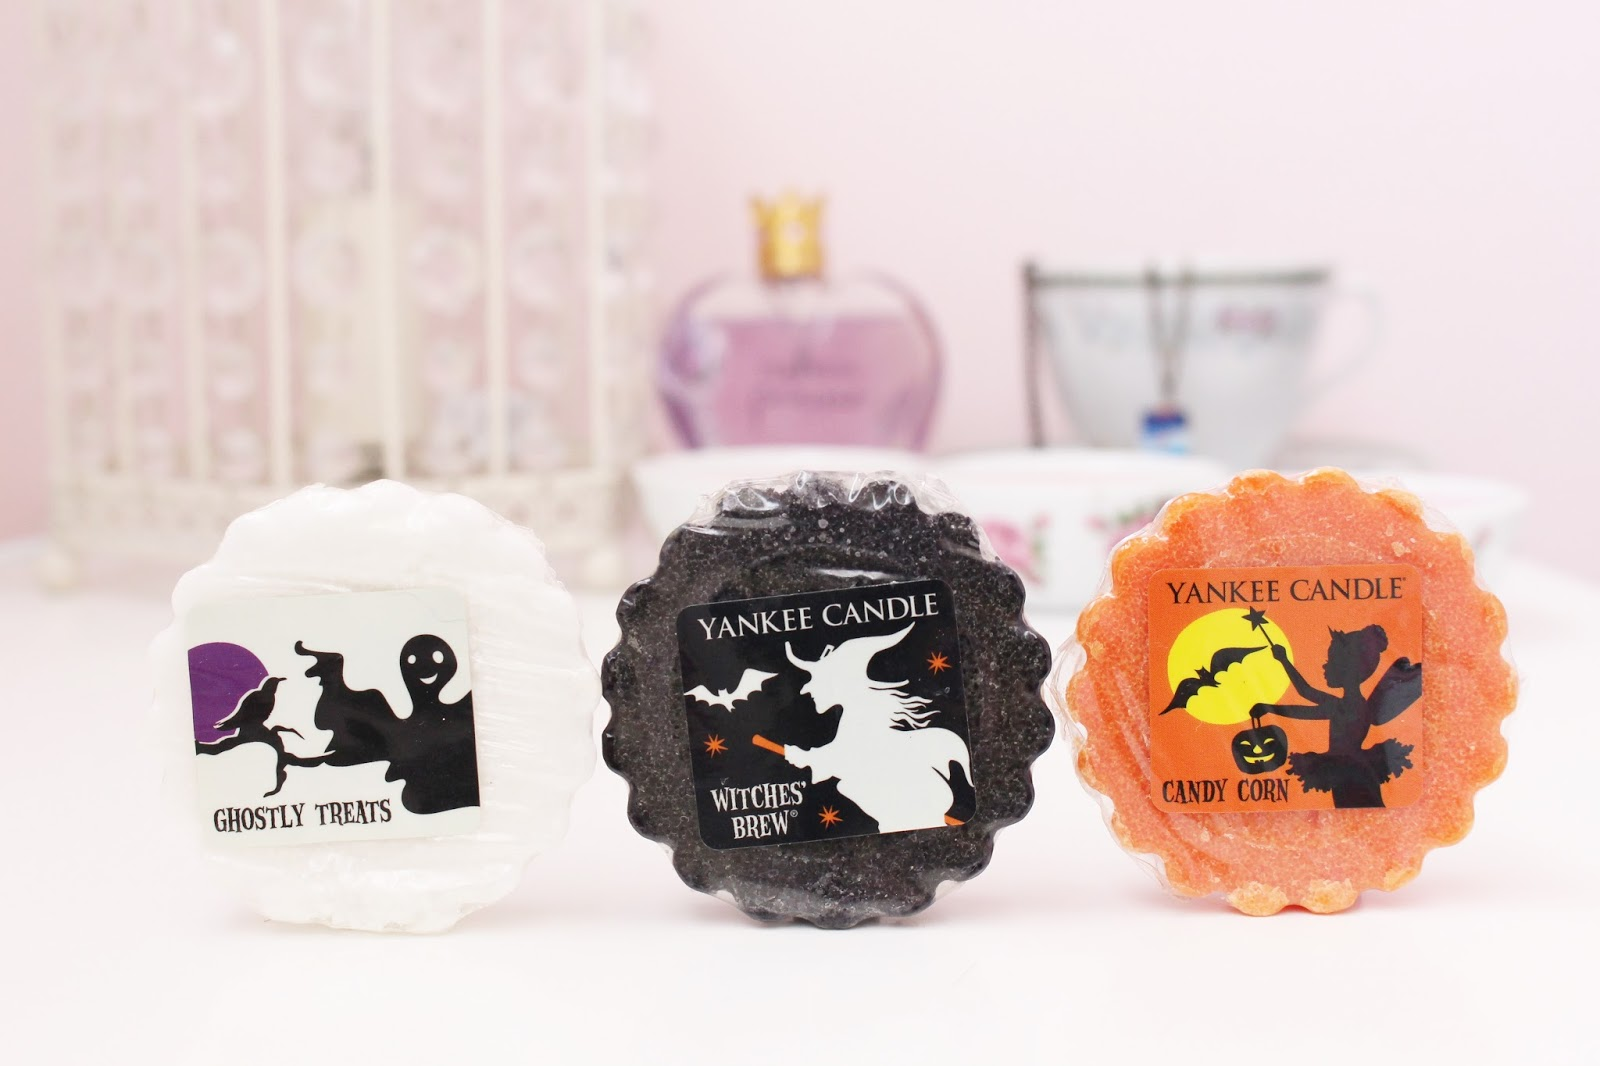 Yankee Candle Ghostly Treats, Witches Brew and Candy Corn Wax Tarts